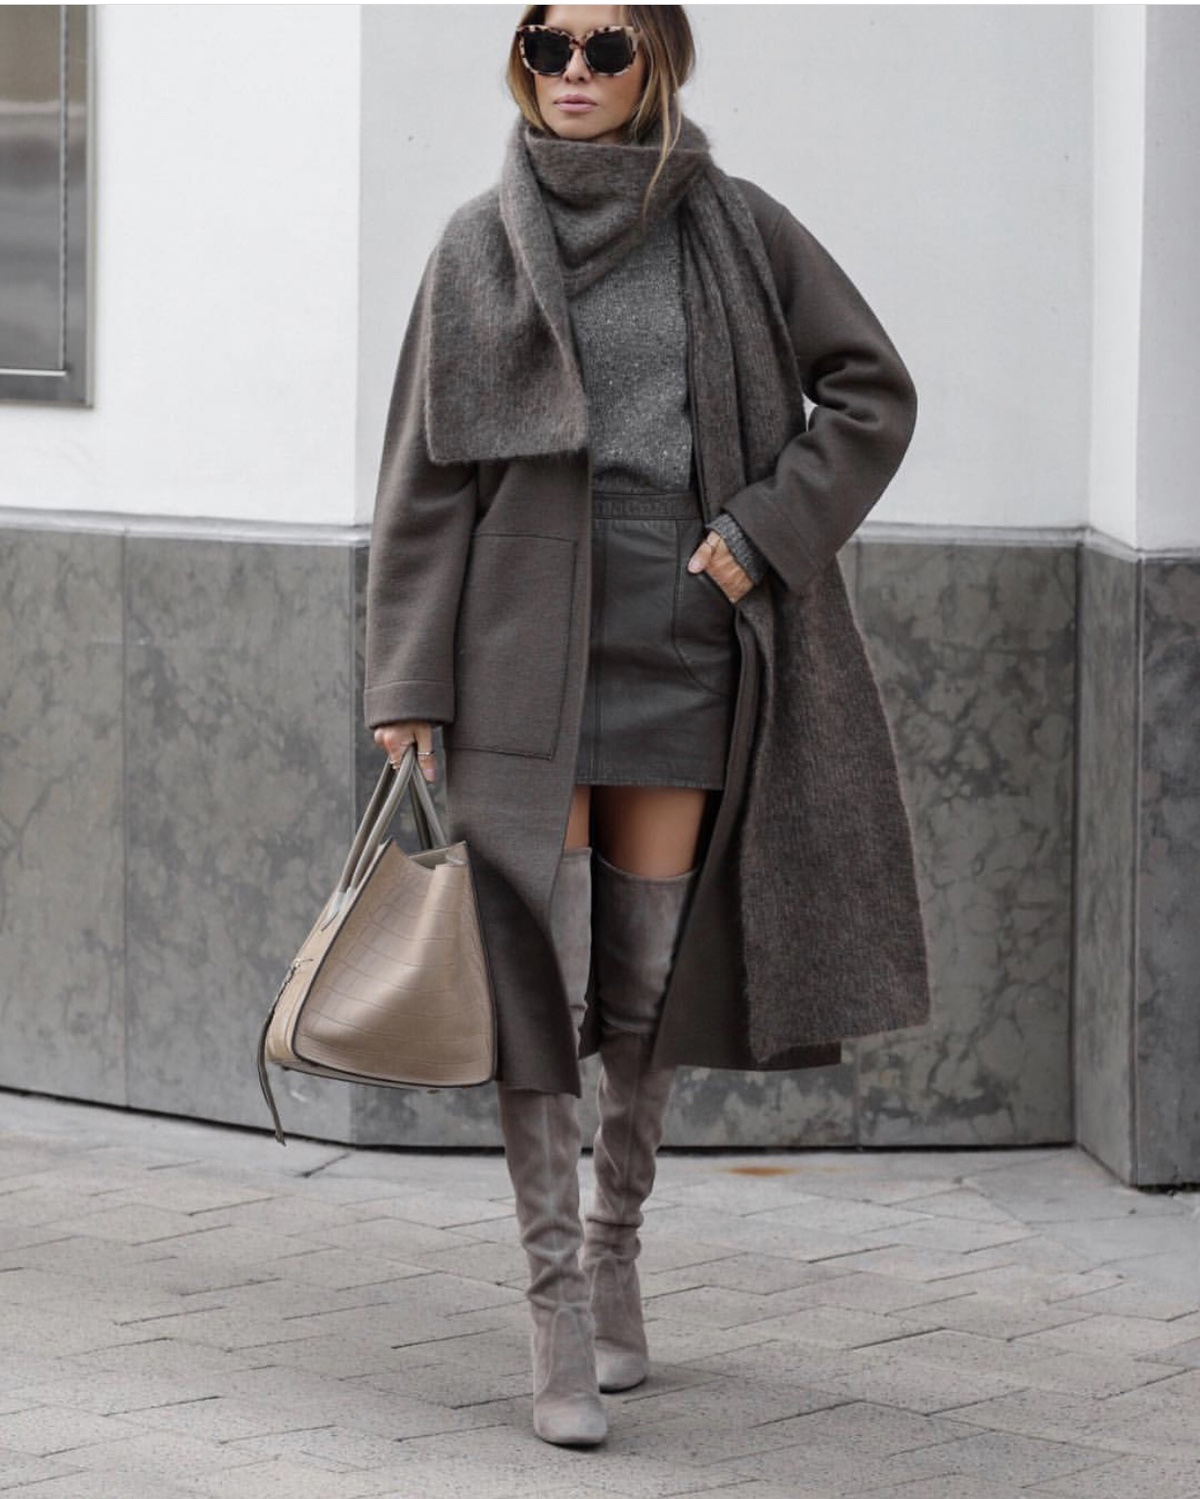 Coats Every Woman Should Own, coatigan outfit, gray stuart weitzman over the knee boots, otk boots outfit, fall outfit inspiration by lolario style | lolariostyle.com